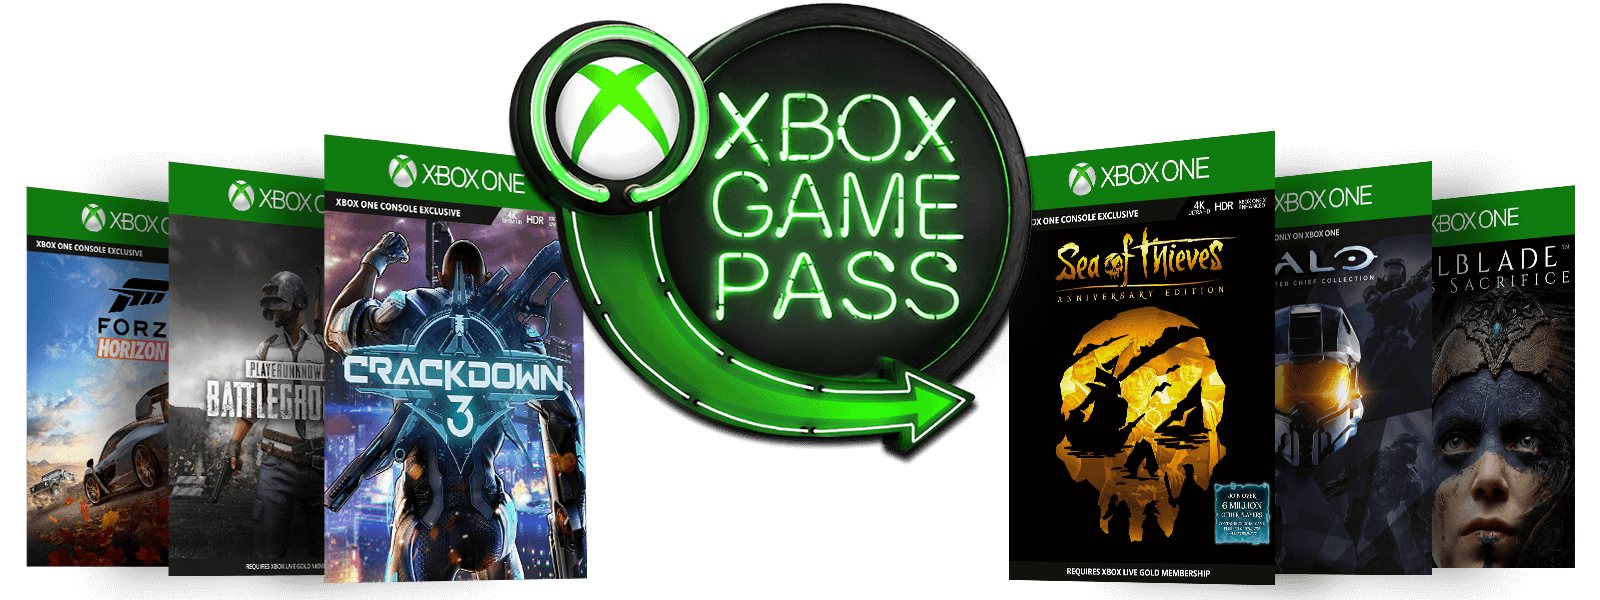 Neon Xbox Game Pass-Logo umgeben von der Verpackung für Forza Horizon 4, PlayerUnknown Battleground, Crackdown 3, Sea of Thieves Anniversary Edition, Halo und Hellbade: Senua's Sacrifice